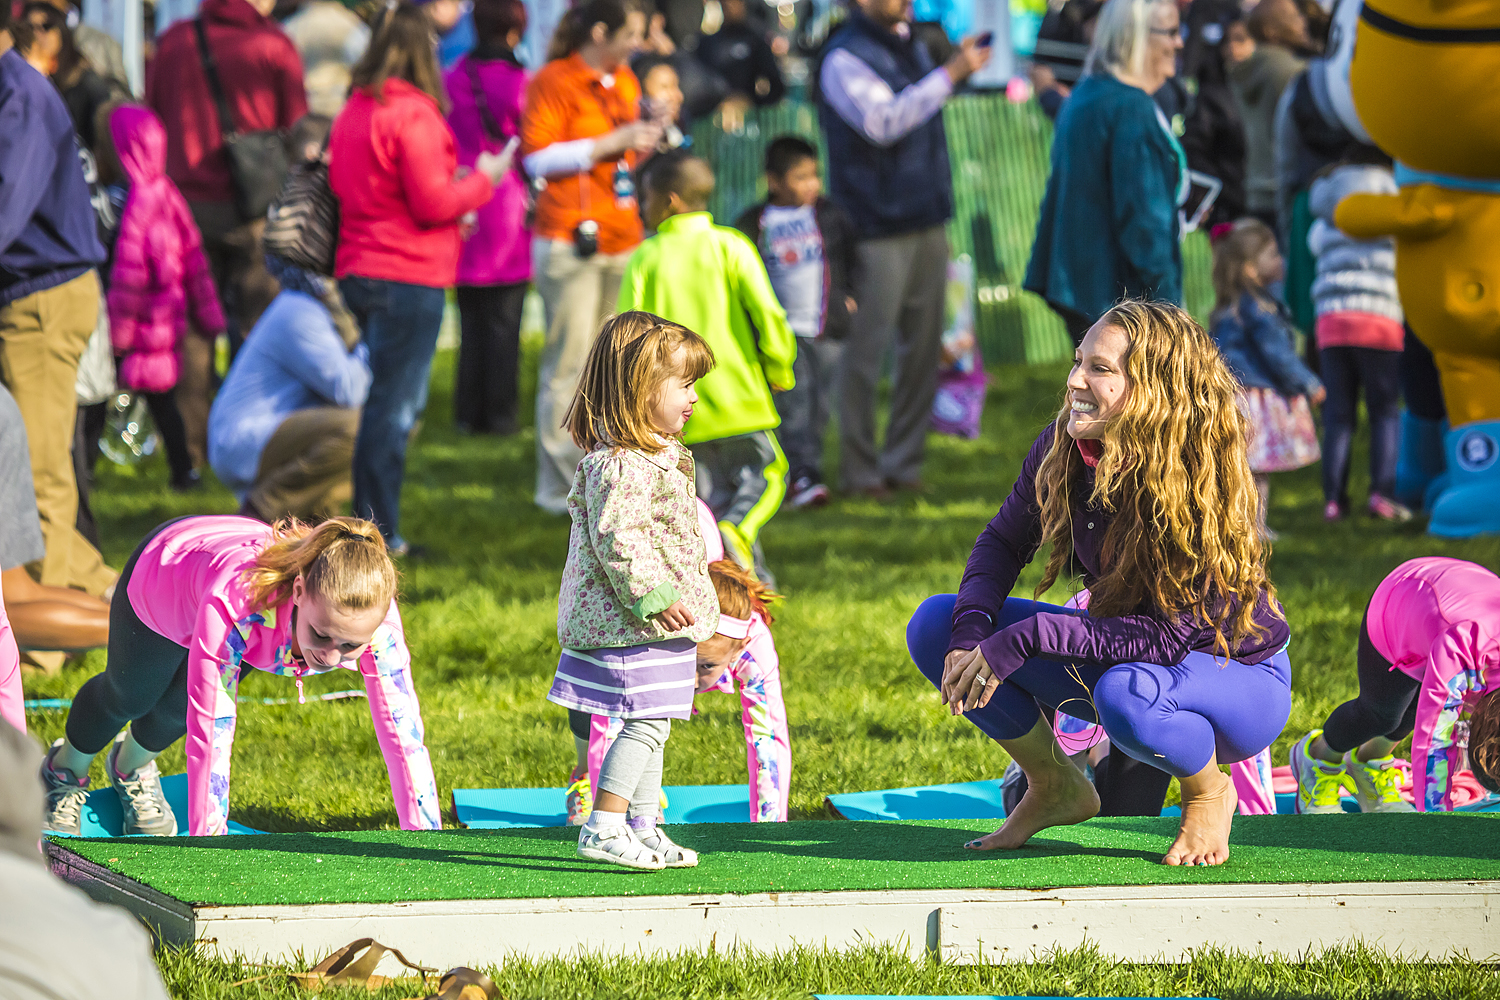 Alison Adams from Homegrown Power Yoga teaching kids in the White House